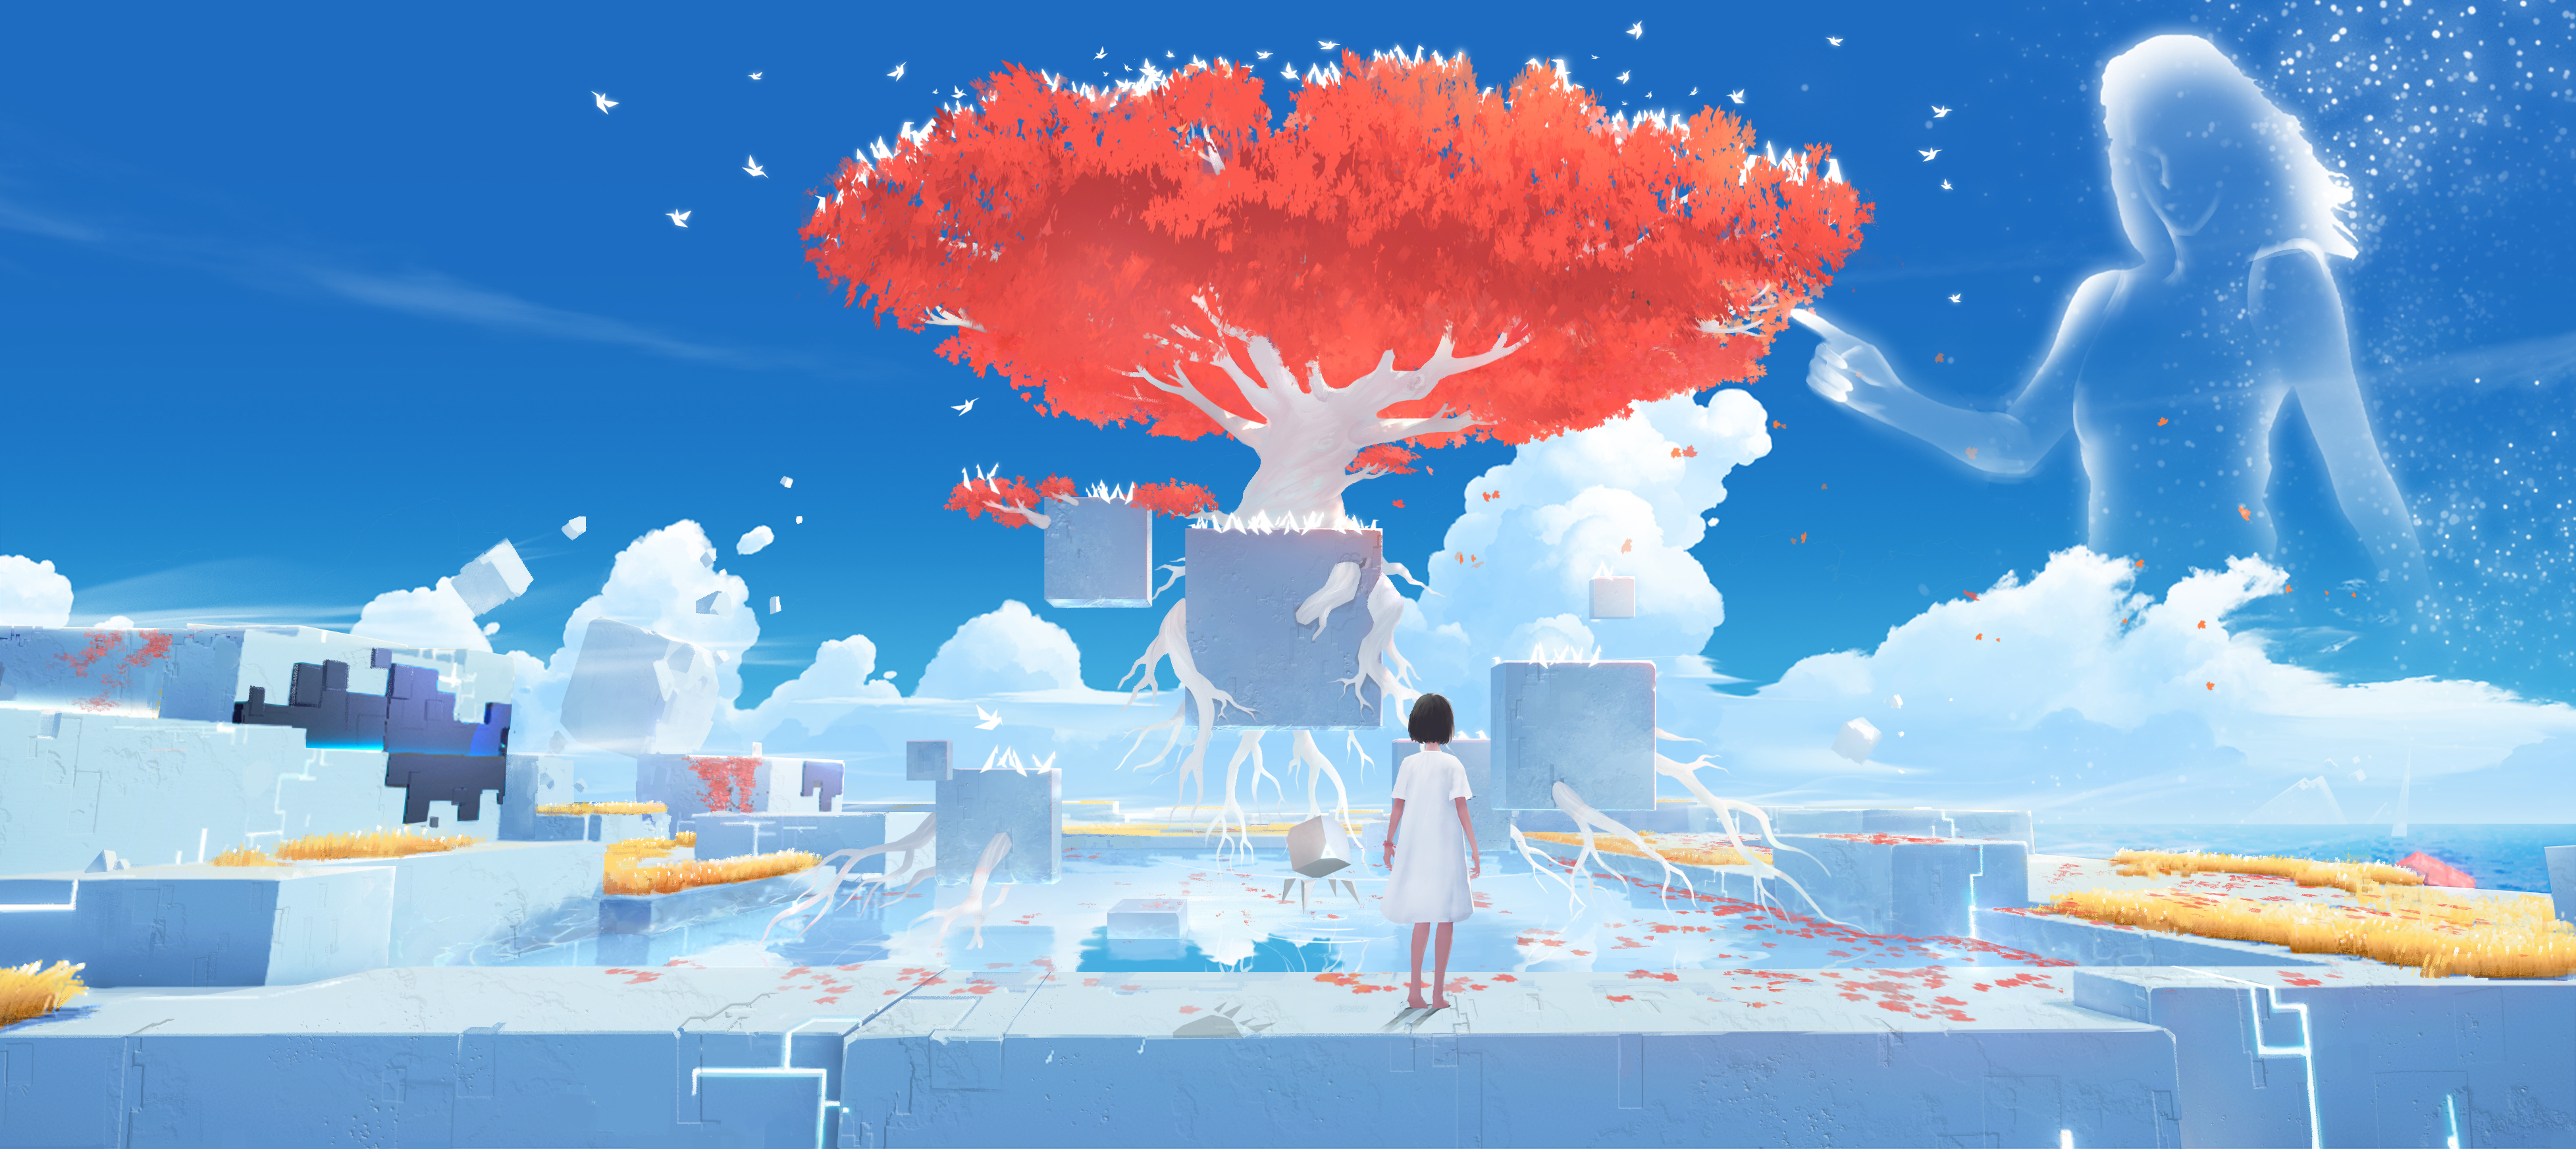 04 Concept art Big red tree with